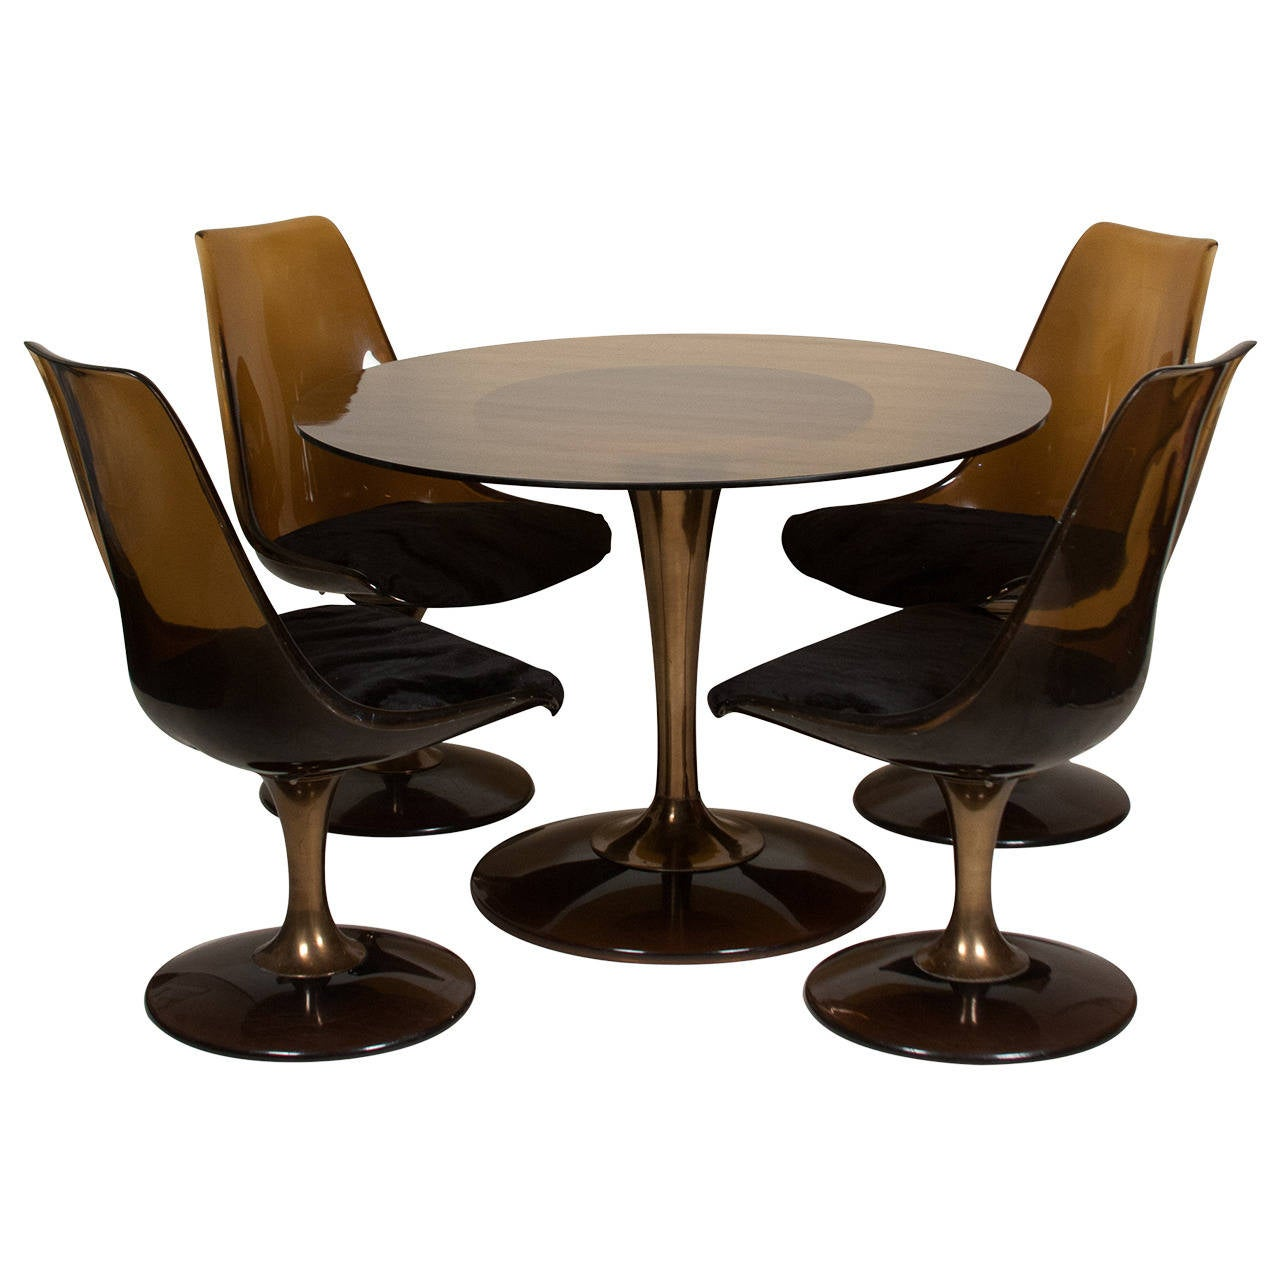 Amber glass top tulip dining table and chairs for sale at for Table and chairs furniture